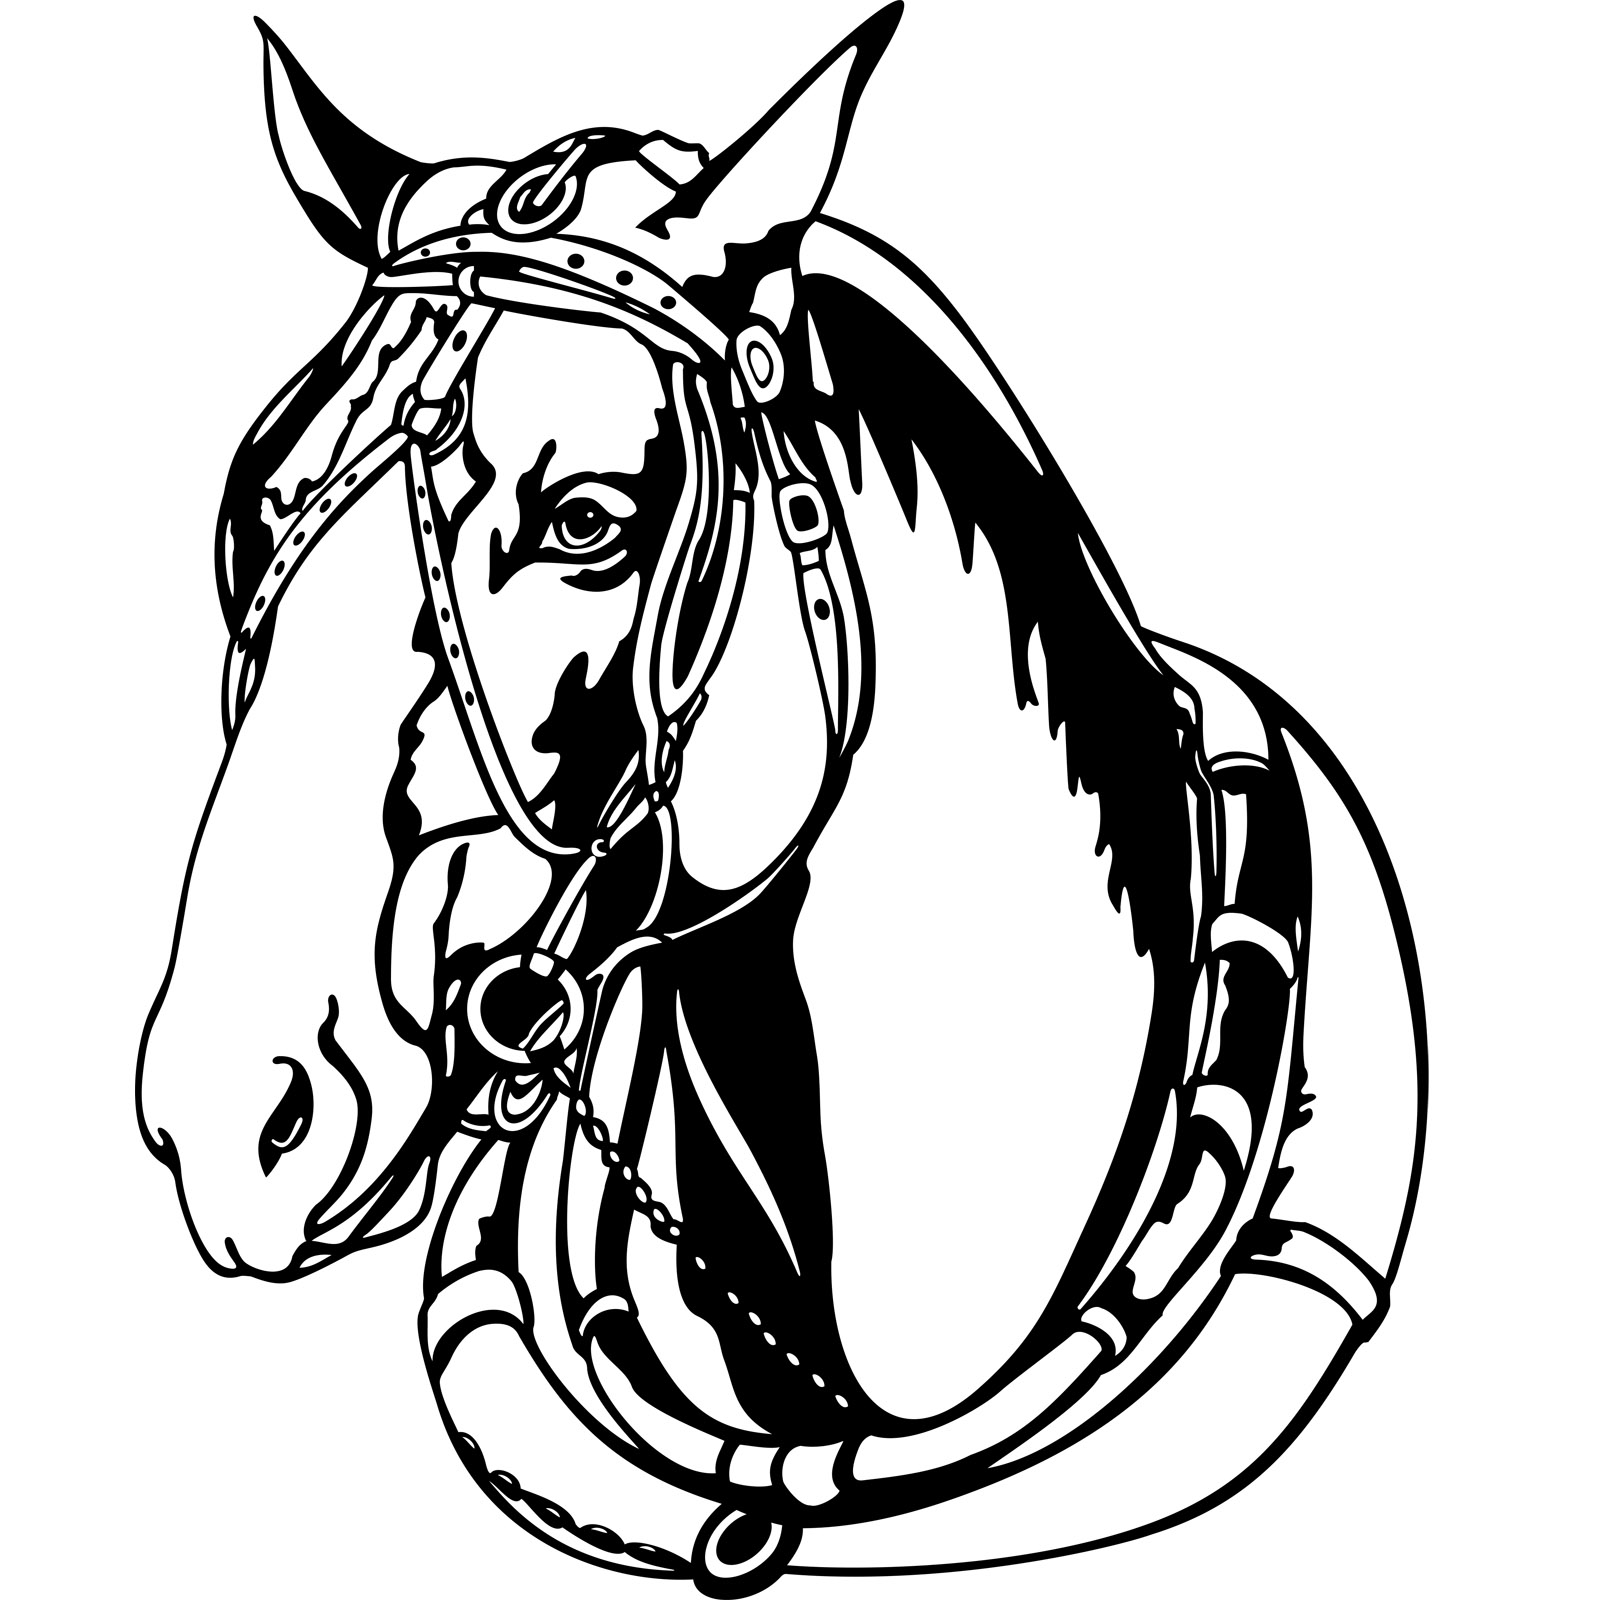 Horse Head Drawing Pictures at GetDrawings.com | Free for personal ...